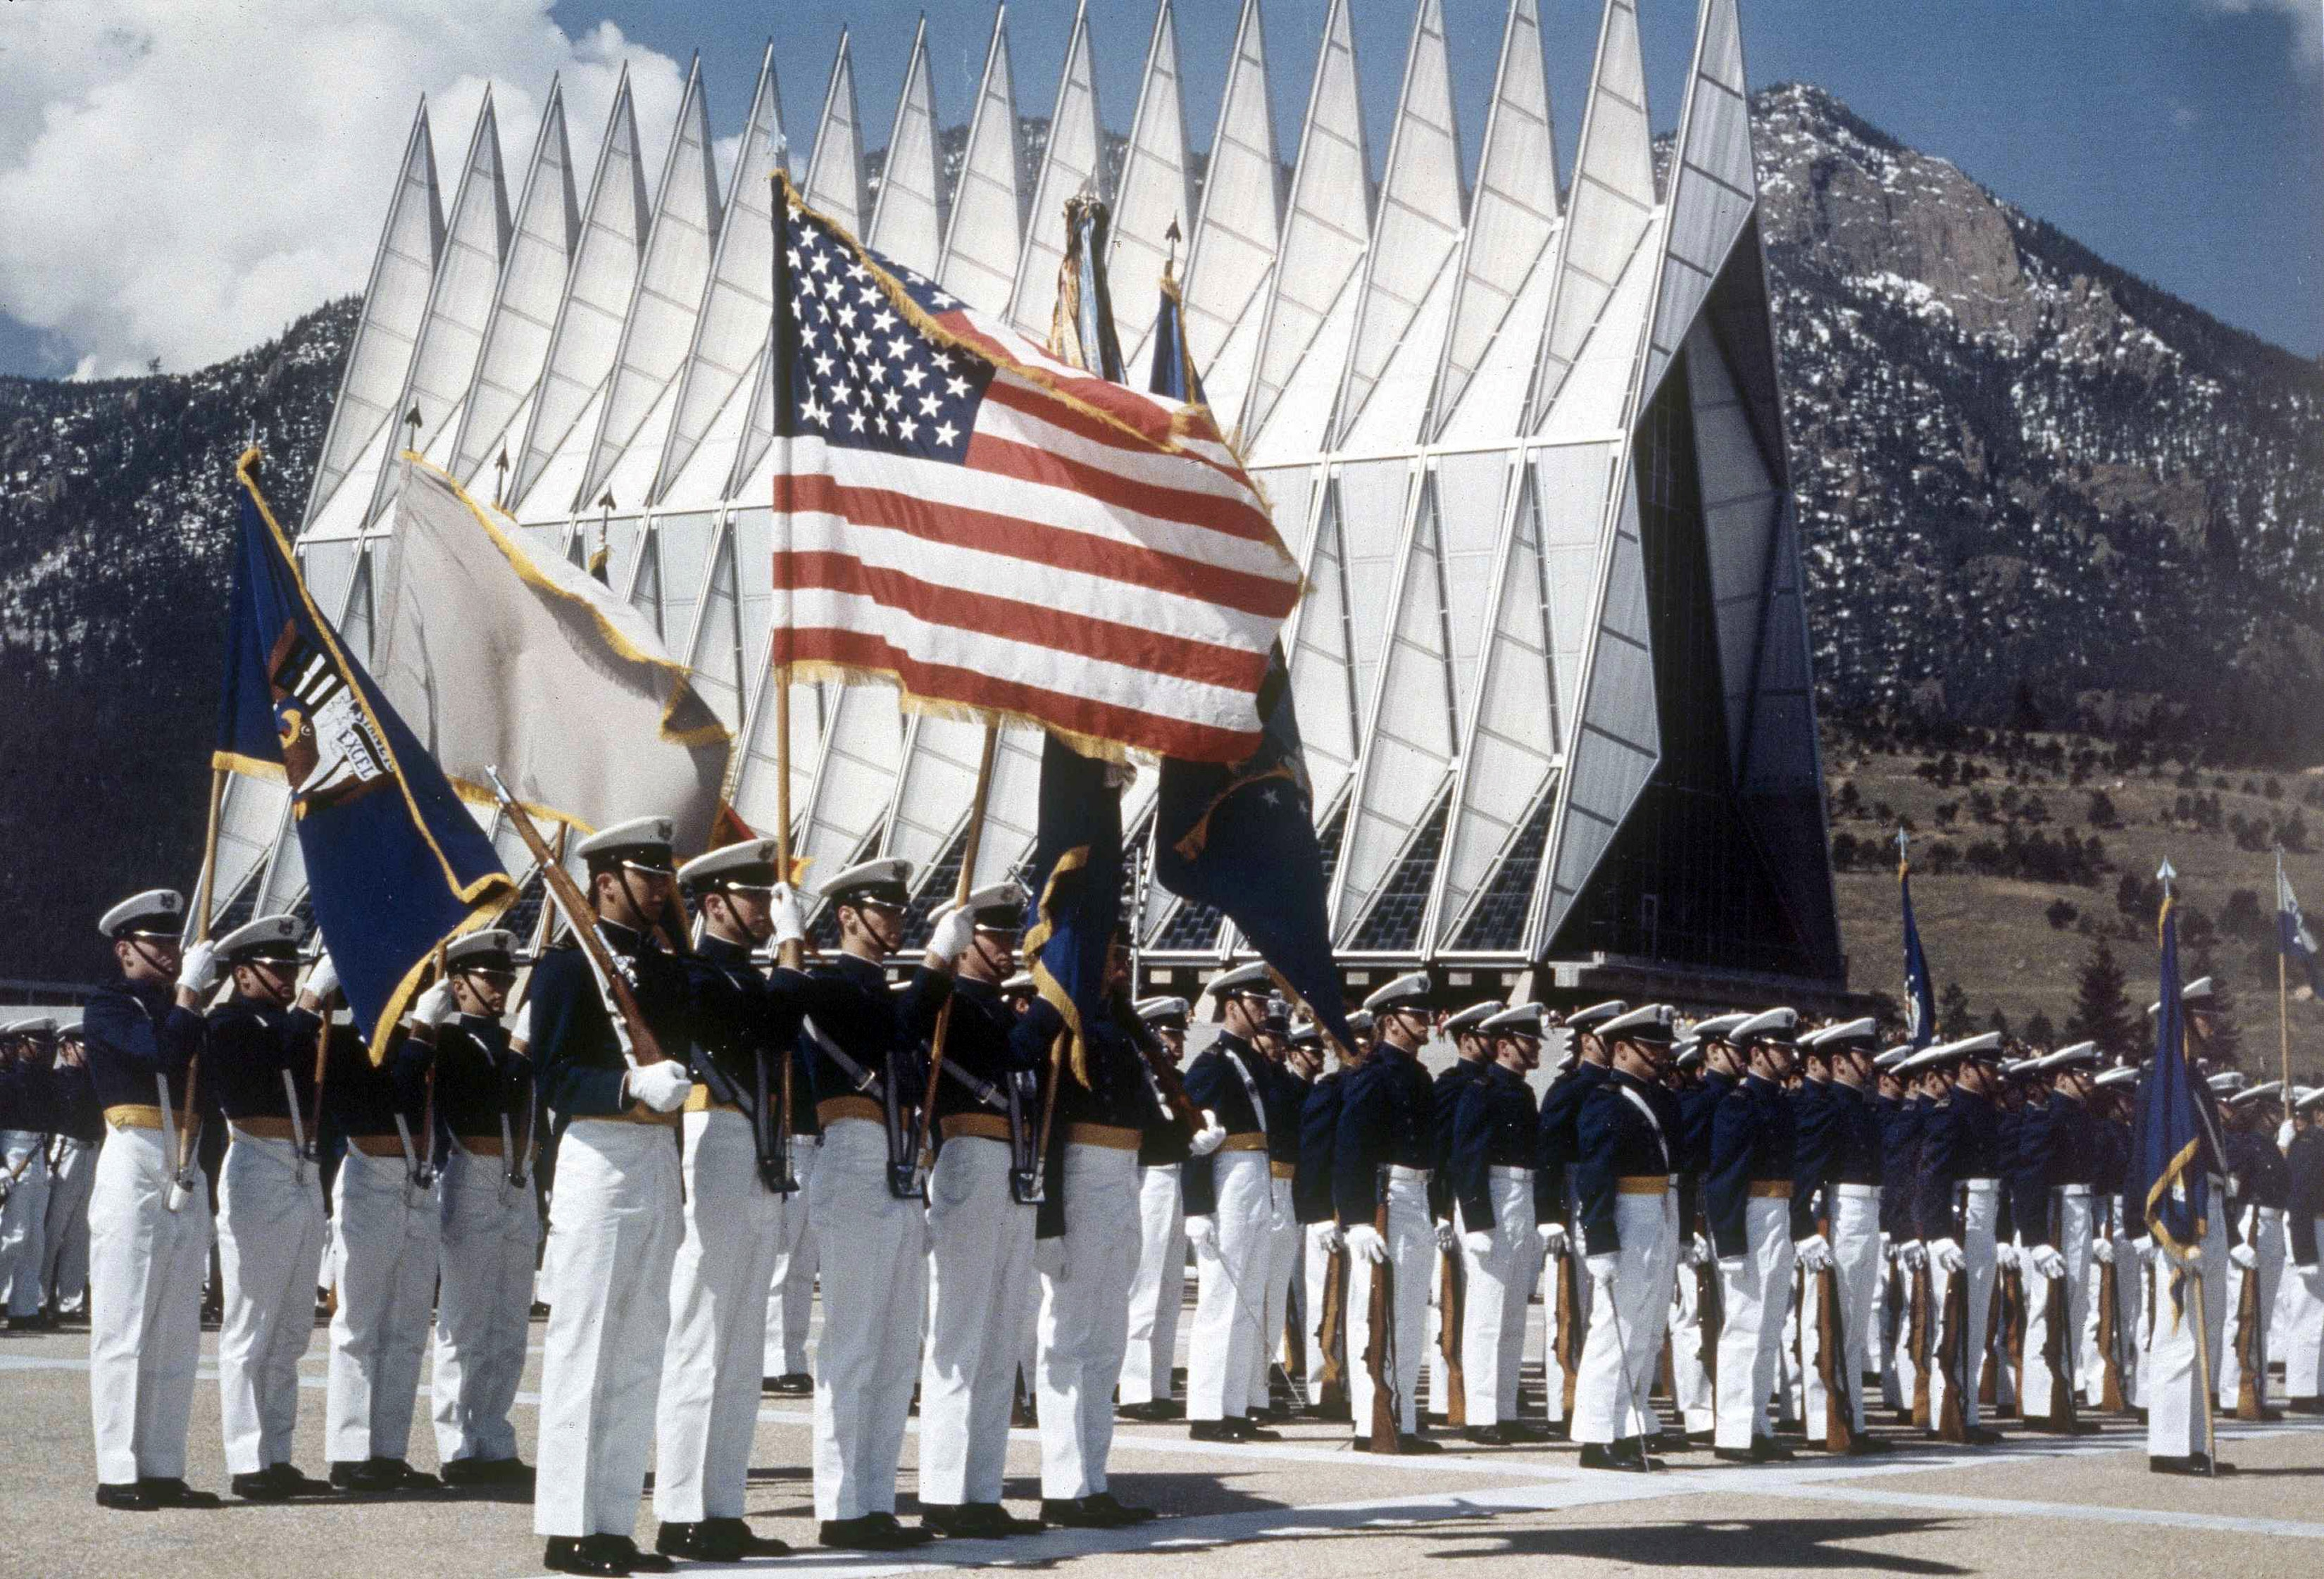 Photo: Cadets in formation at the Air Force Academy